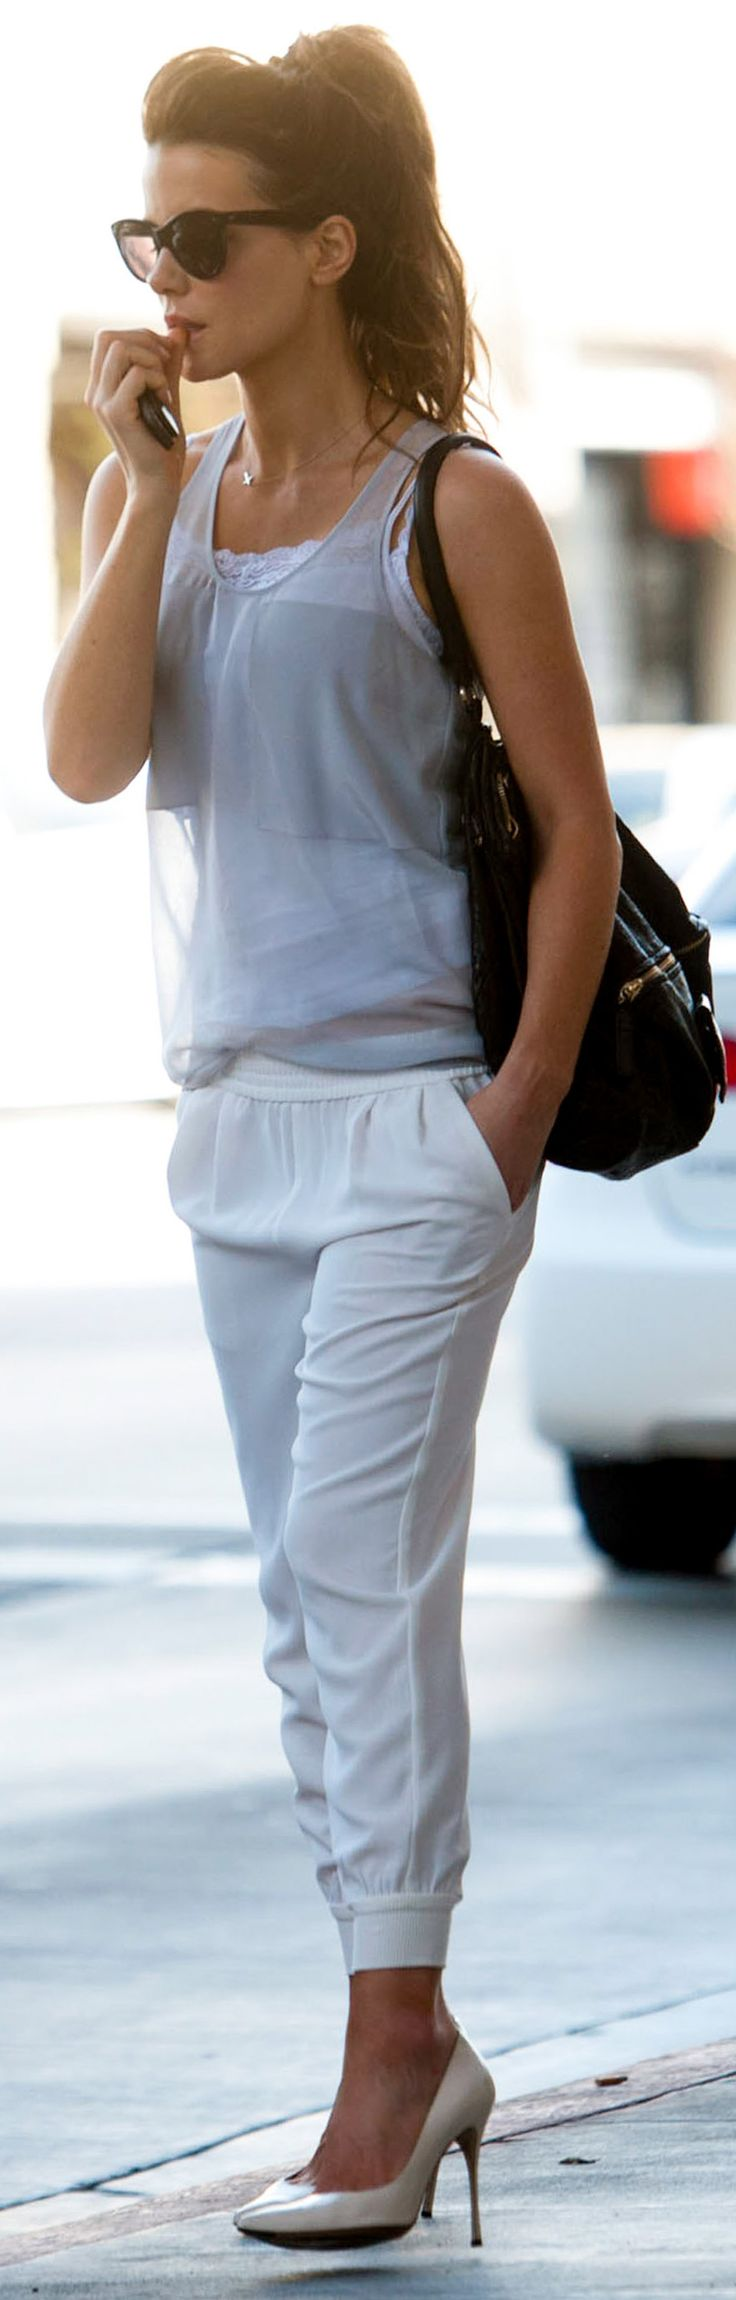 Kate Beckinsale + sweatpants + pumps!!